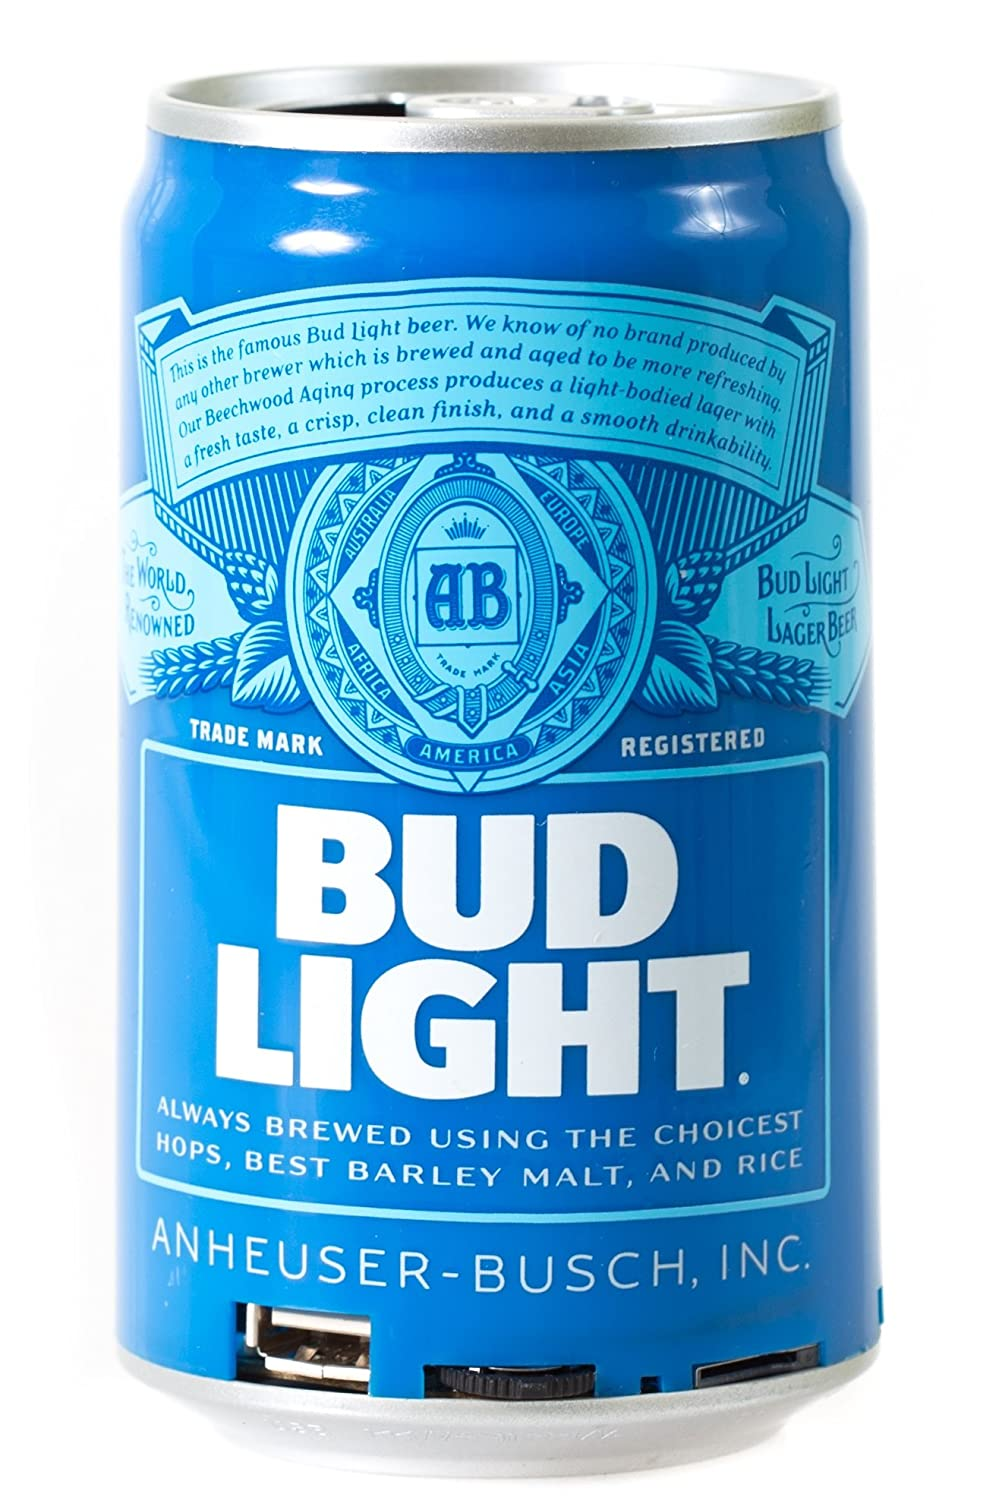 High Quality Amazon.com: Bud Light Bluetooth Can Speaker  Wireless Audio Sound Stereo  Beer Can, Bluetooth BudLight Music Player Portable Travel Stereo Speaker. Nice Look